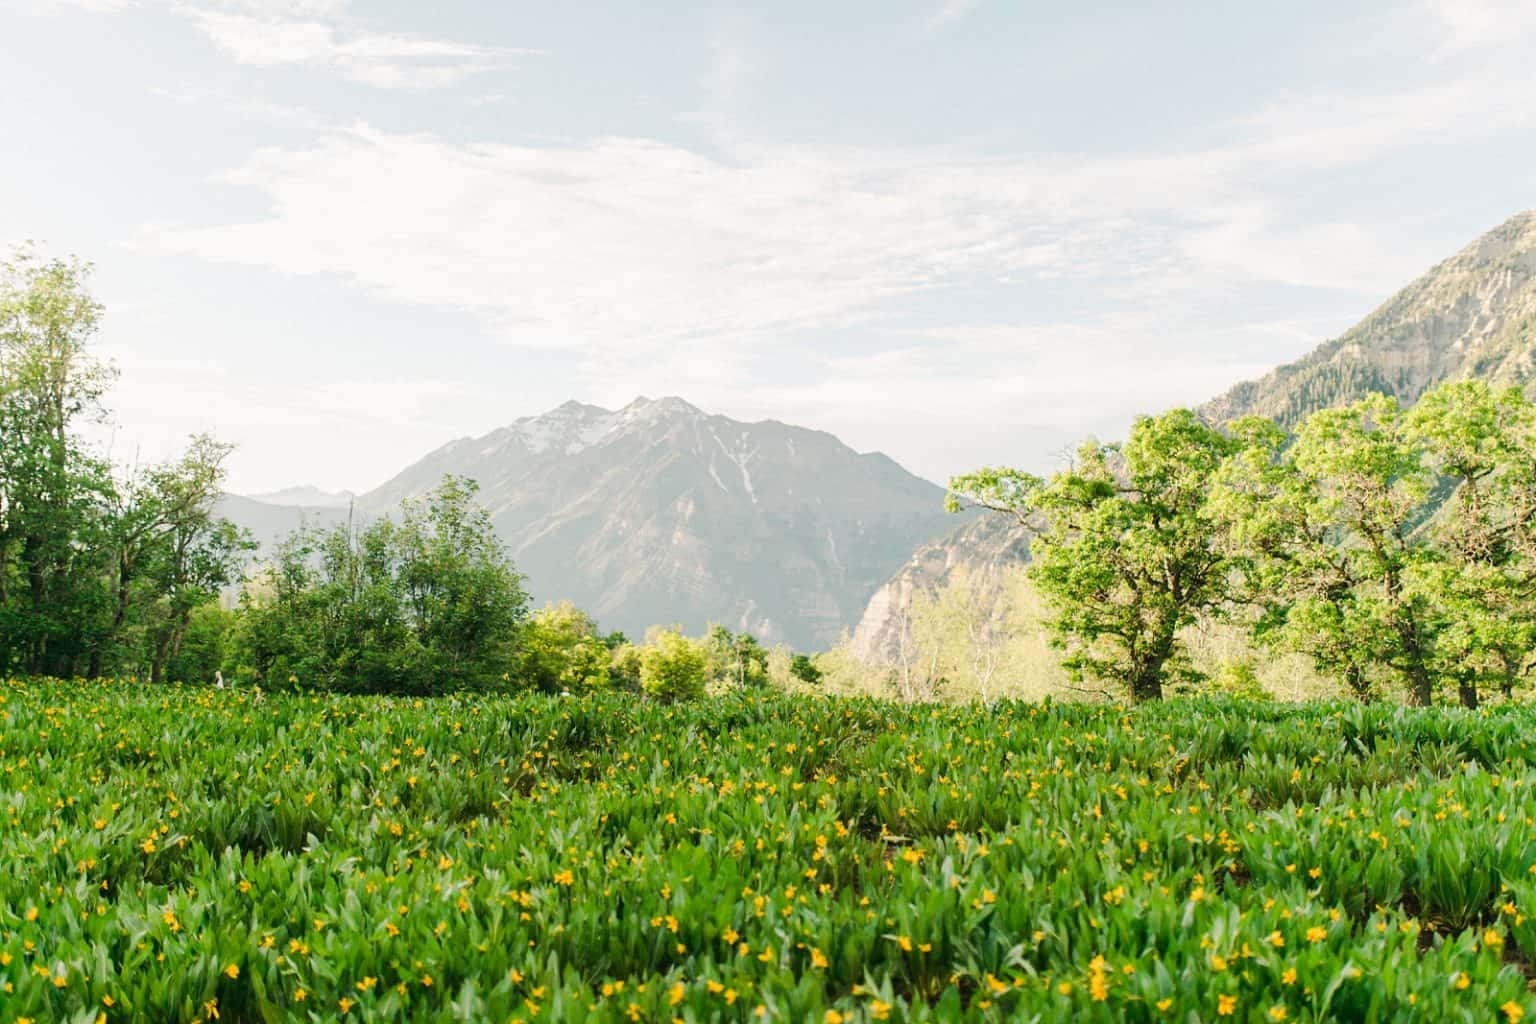 Provo Canyon wildflowers field engagement session, Utah wedding photography, mountain field with yellow flowers